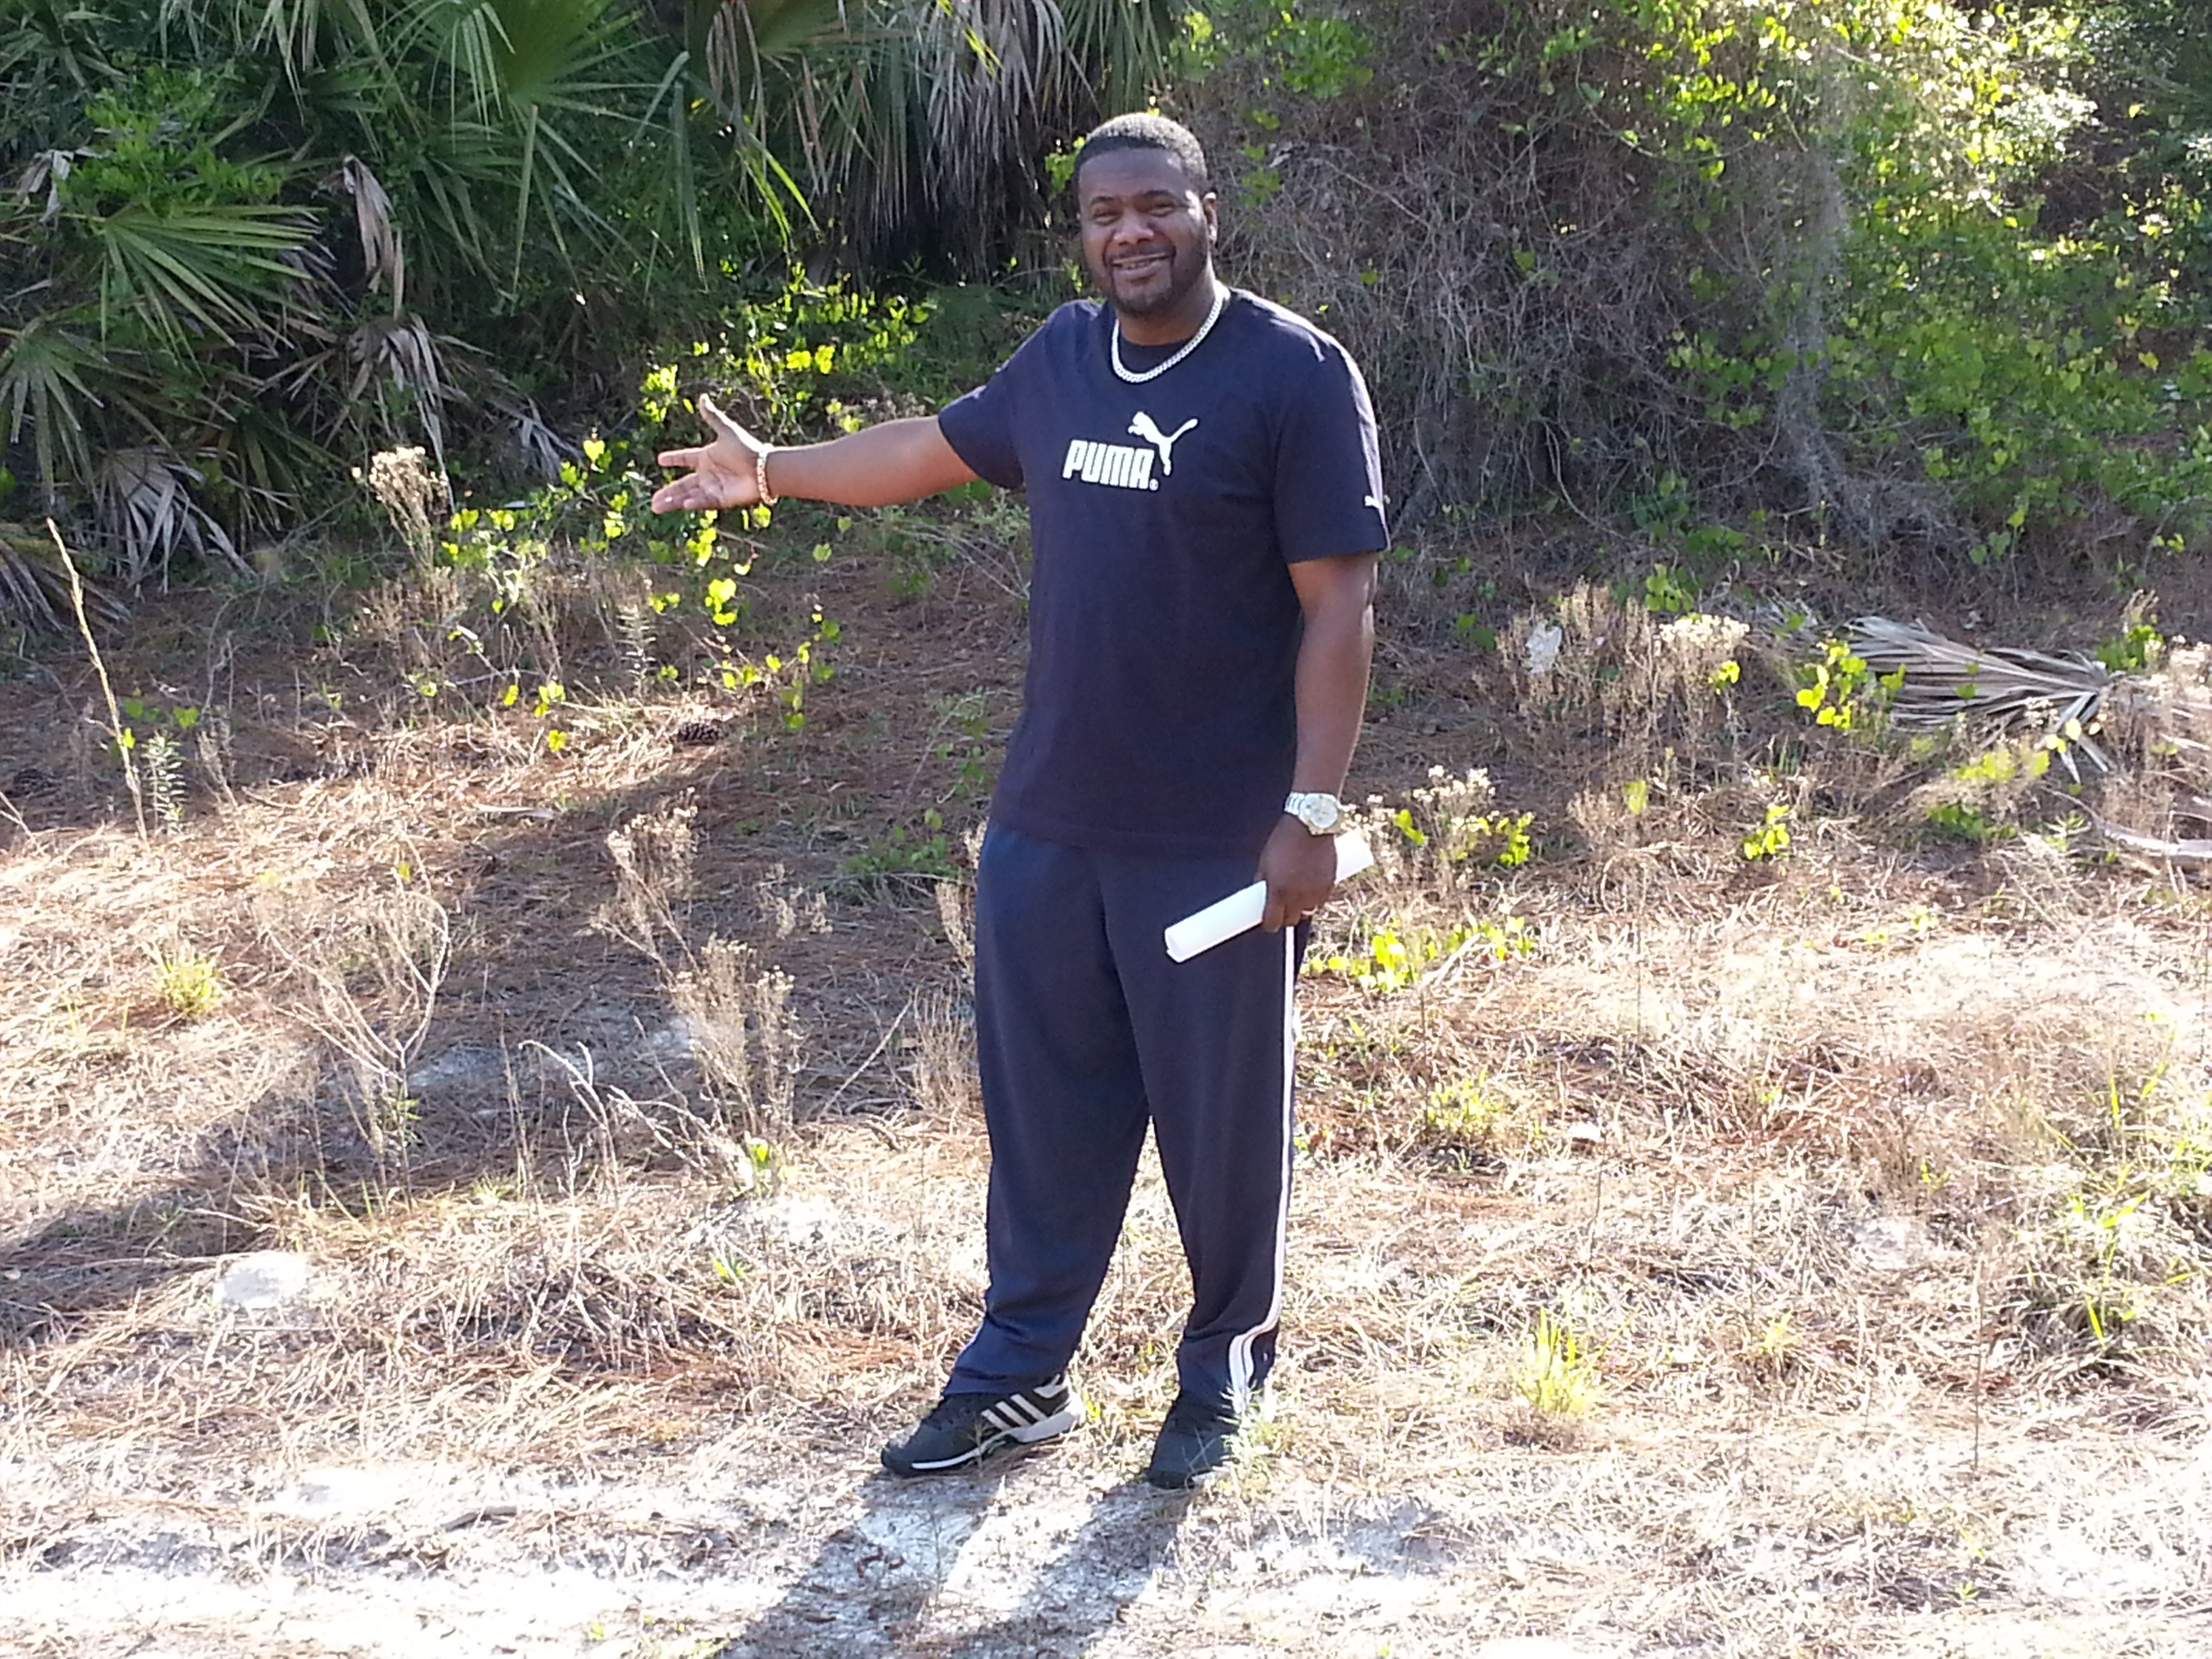 Another one of my proud customers and now owner of a quarter acre of land in Sarasota Florida . He cannot wait to move down there in a couple of years and for us to start building his very own home.